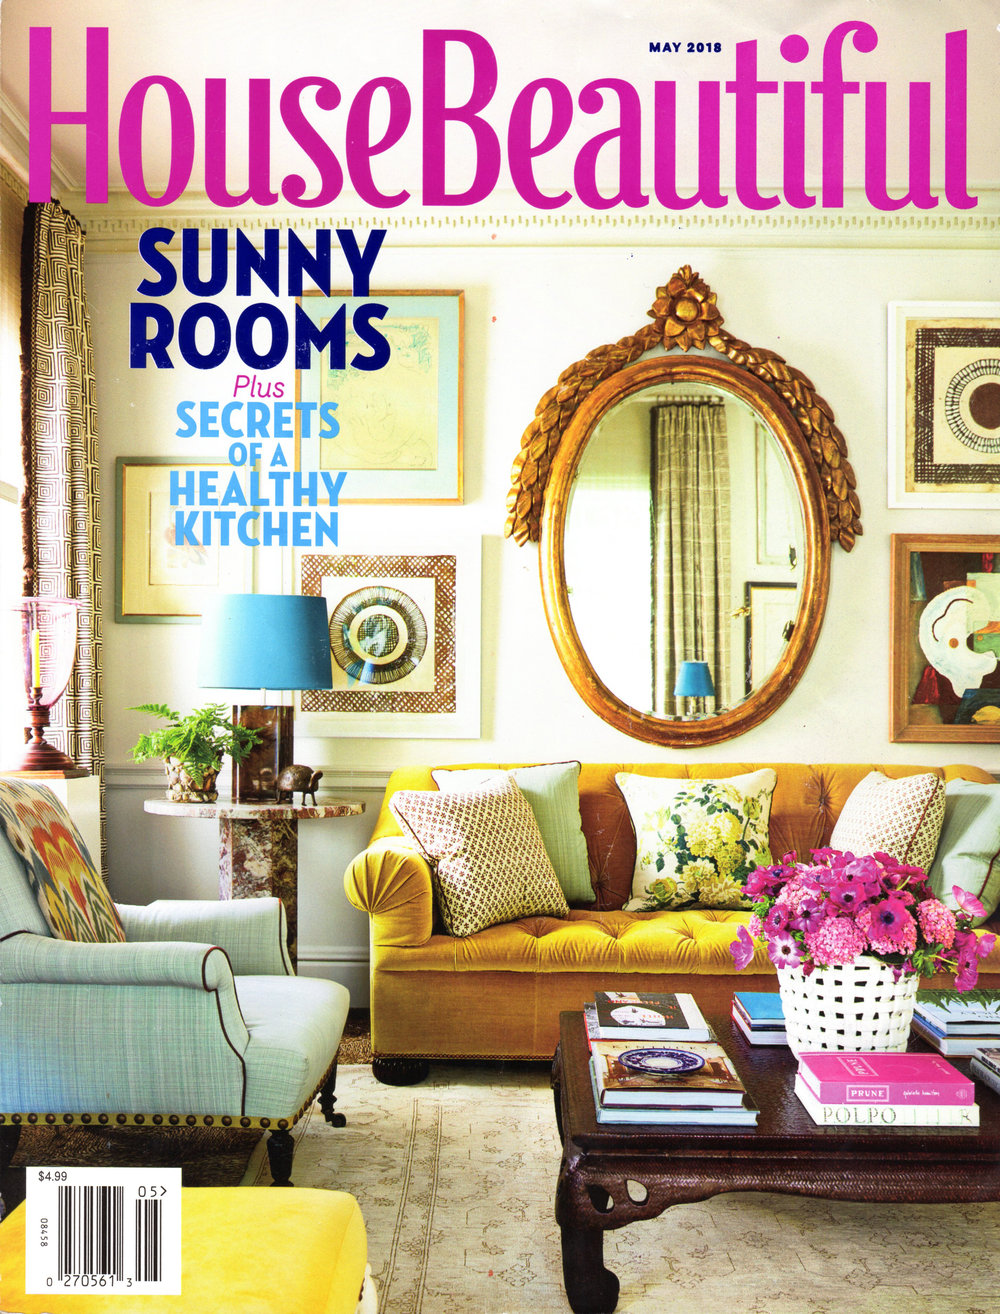 House Beautiful May 2018 cover.jpg